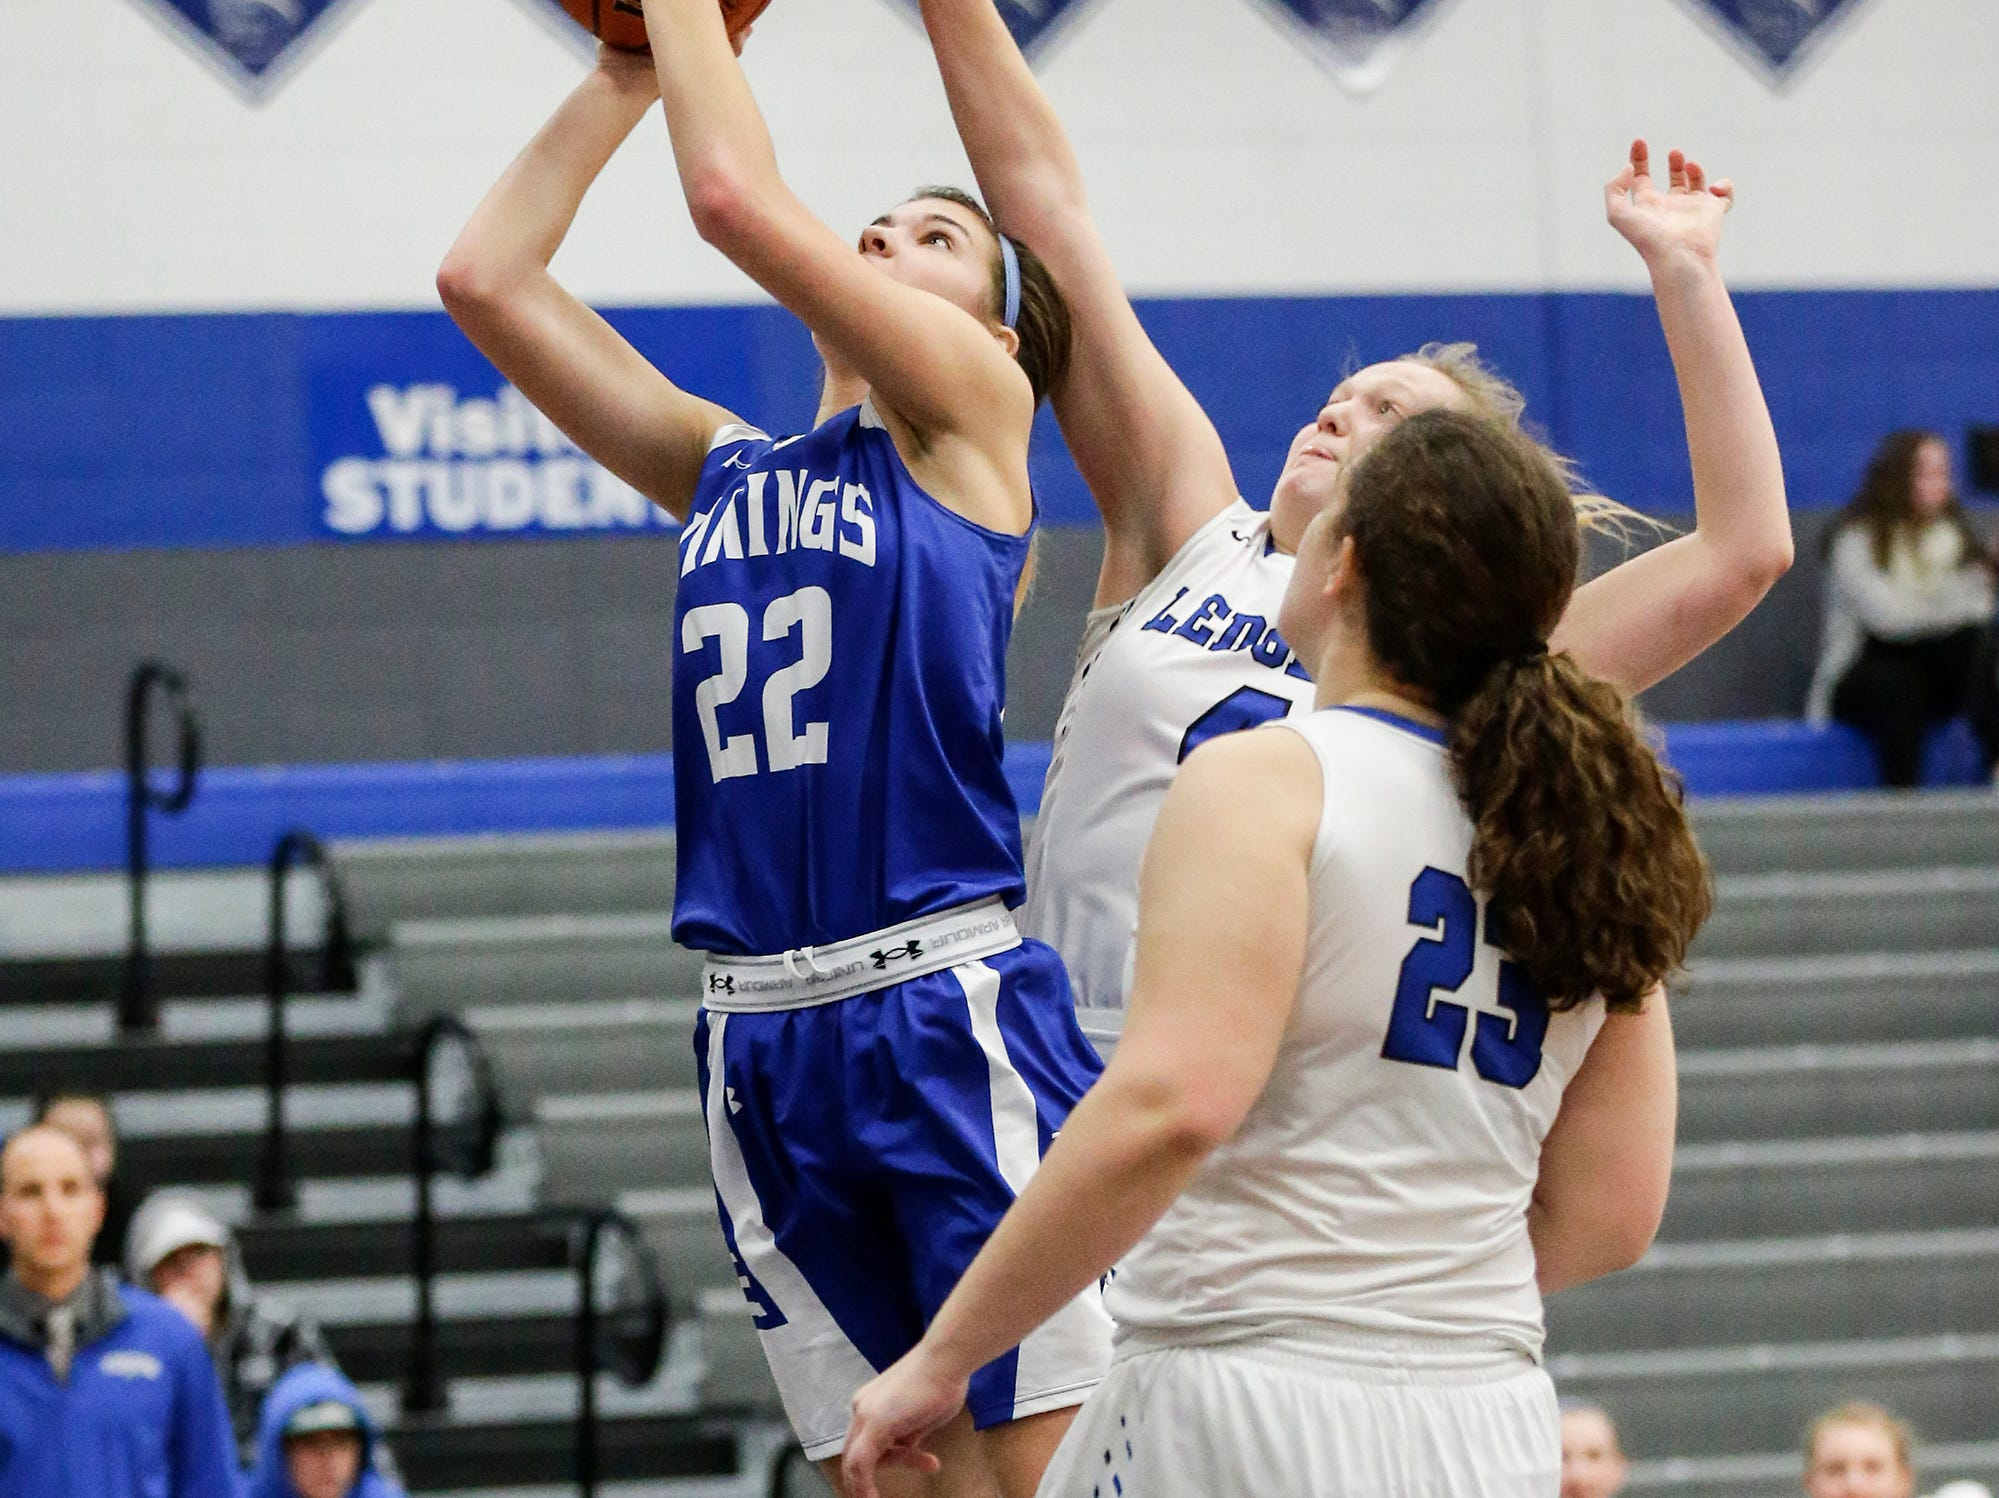 Winnebago Lutheran Academy girls basketball's Kaylee Frey goes up for a shot against St. Mary's Springs Academy's Brianna Freund during their game Tuesday, December 18, 2018 in Fond du Lac. Winnebago Lutheran Academy won the game 58-54. Doug Raflik/USA TODAY NETWORK-Wisconsin